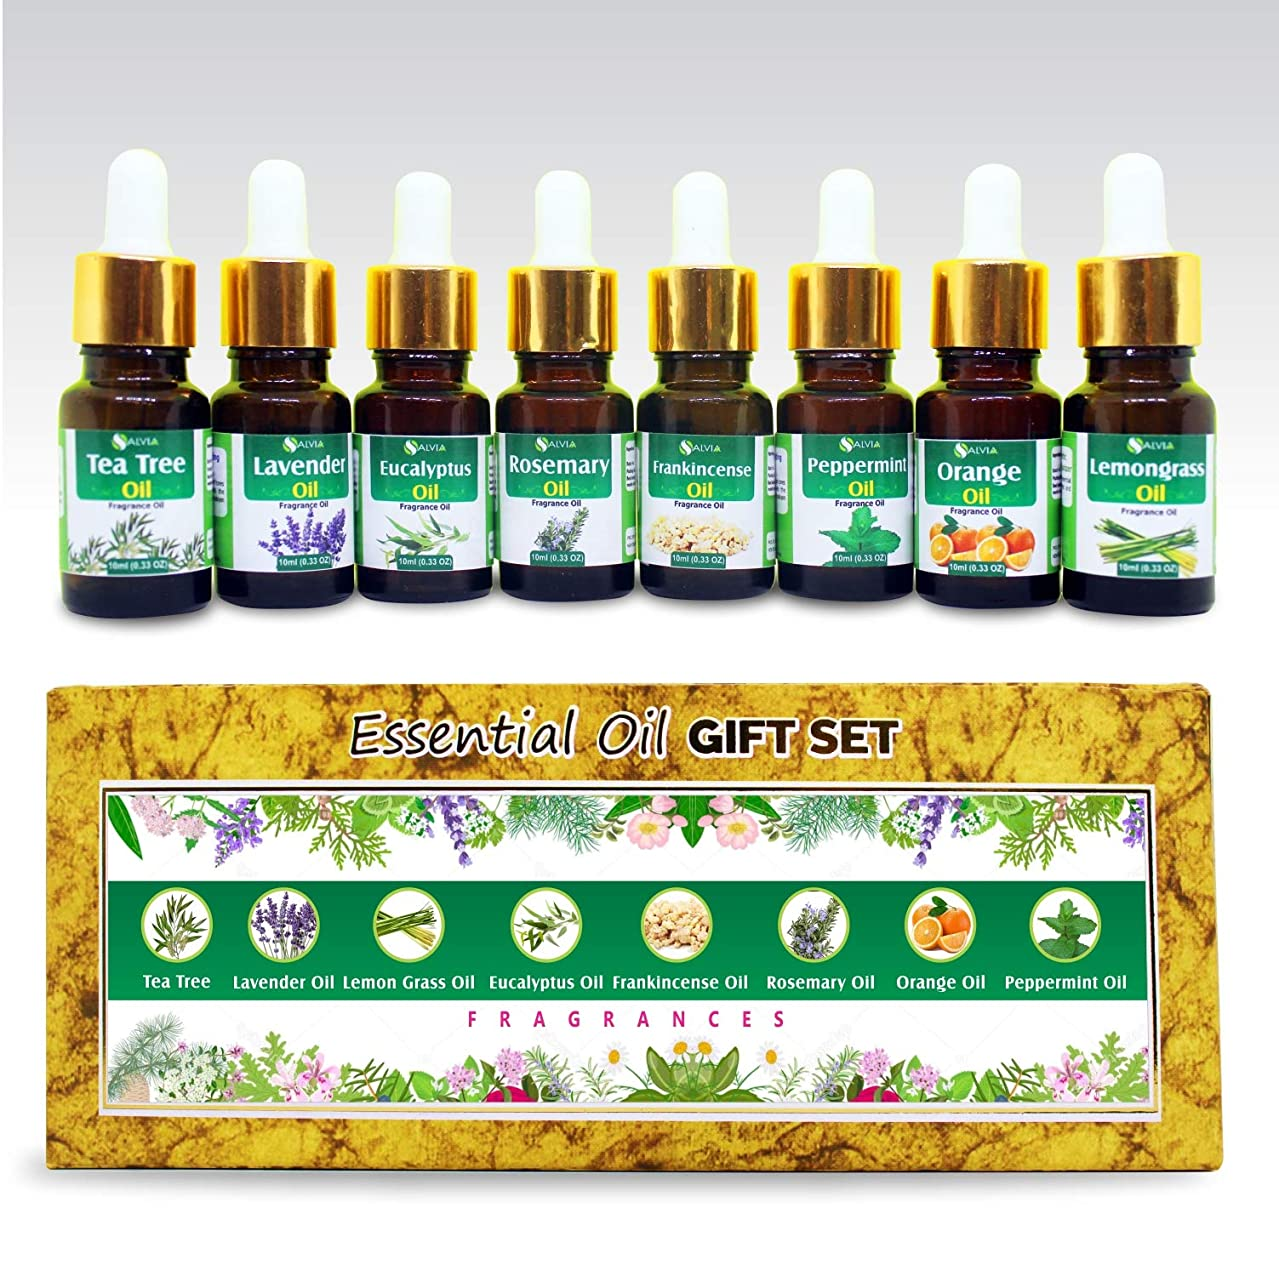 ブラジャー満足させる薬を飲むAromatherapy Fragrance Oils 100% Natural Therapeutic Essential Oils 10ml each (Tea Tree, Lavender, Eucalyptus, Frankincense, Lemongrass, Rosemary, Orange, Peppermint) Gift set